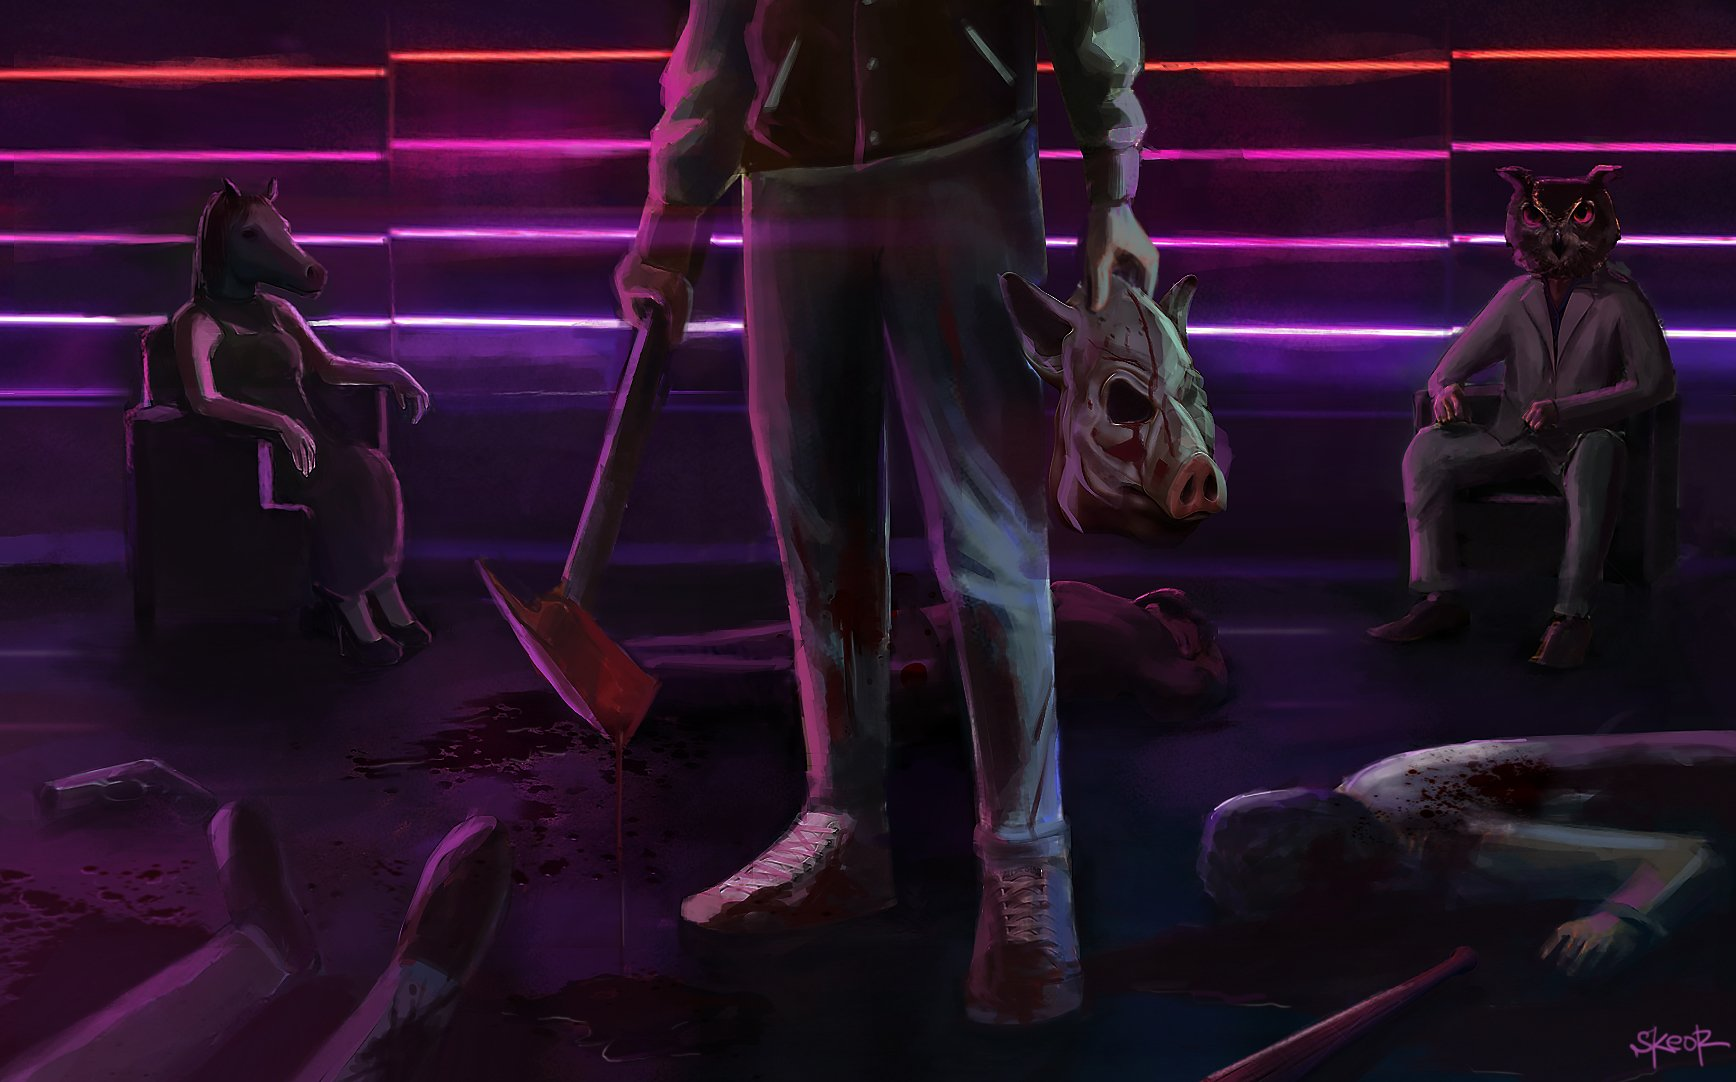 Hotline Miami Iphone Wallpaper Hotline Miami 2 Wrong Number Wallpaper And Background